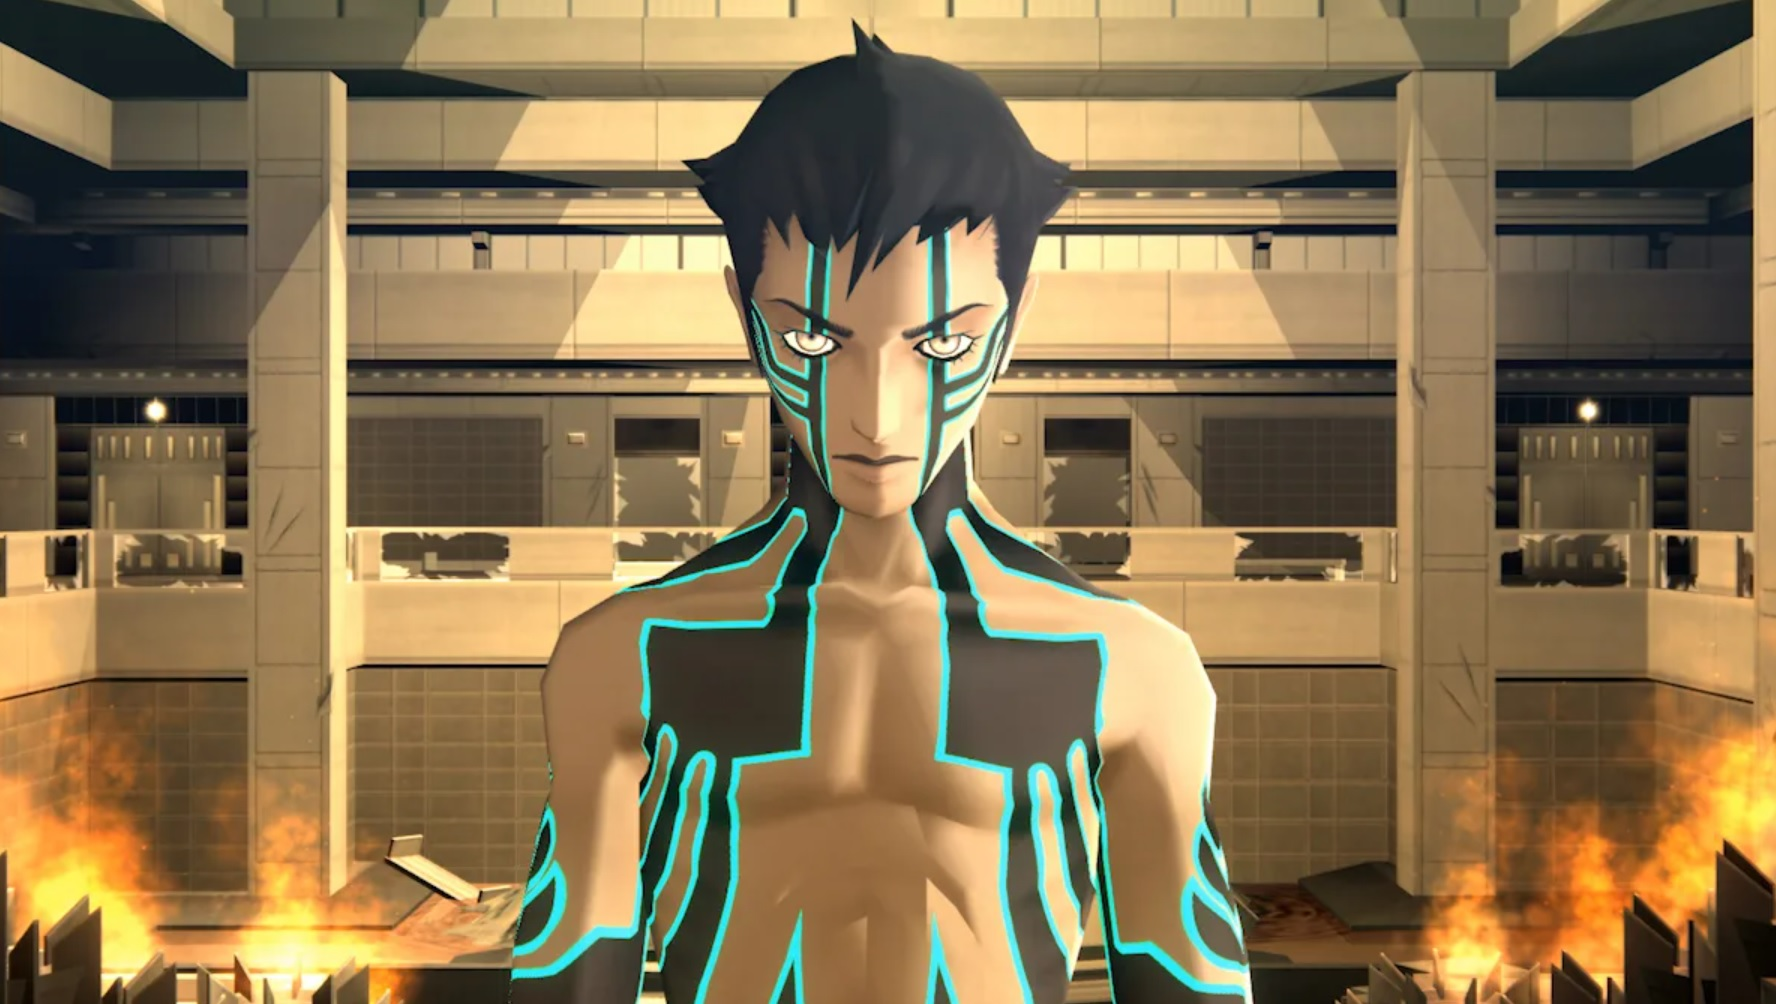 Shin Megami Tensei III Nocturne HD Remaster is just as good as I remember screenshot